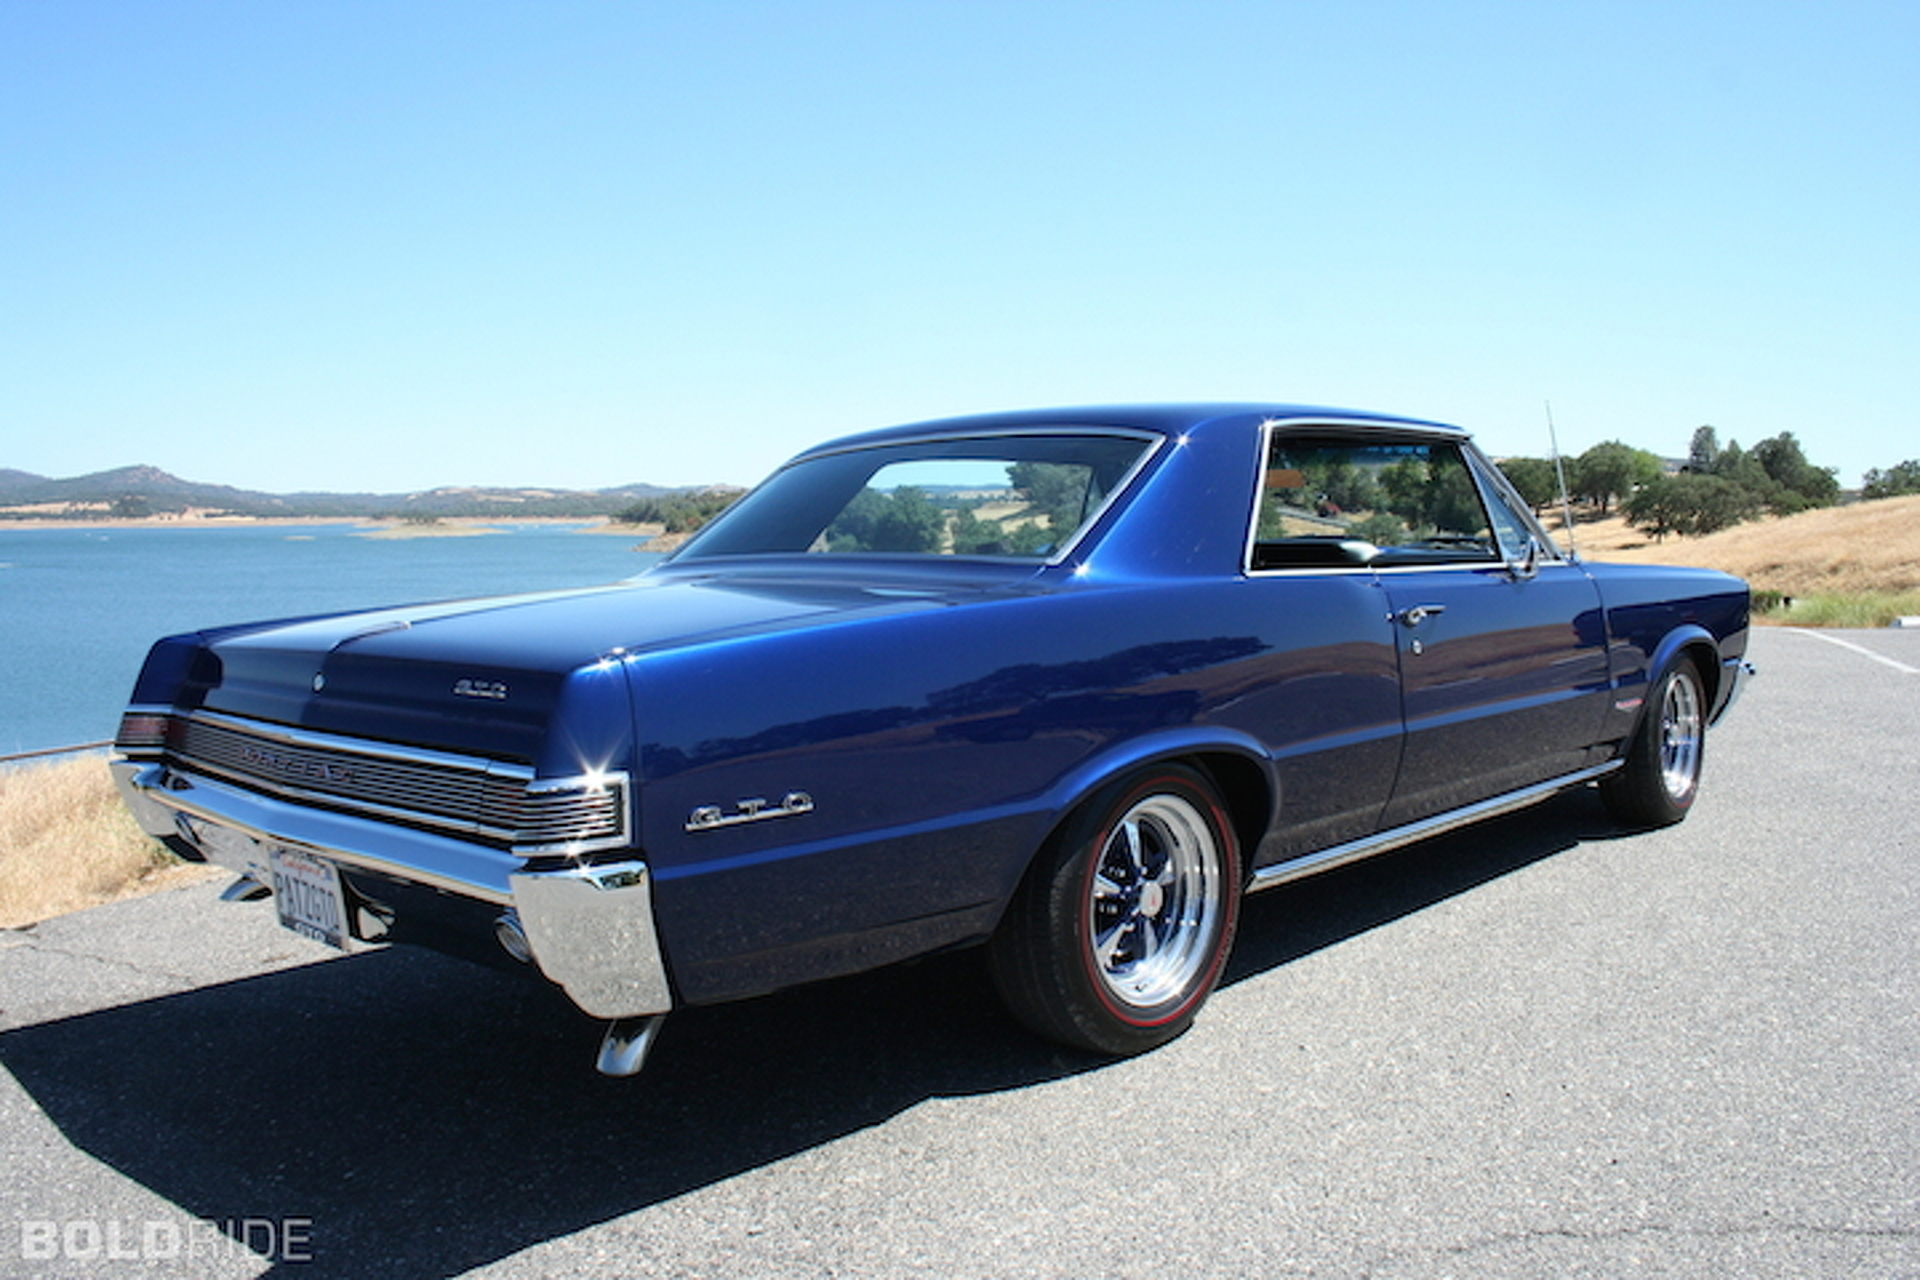 1970 Pontiac Gto Convertible For Sale1968 1960 Your Ride 1965